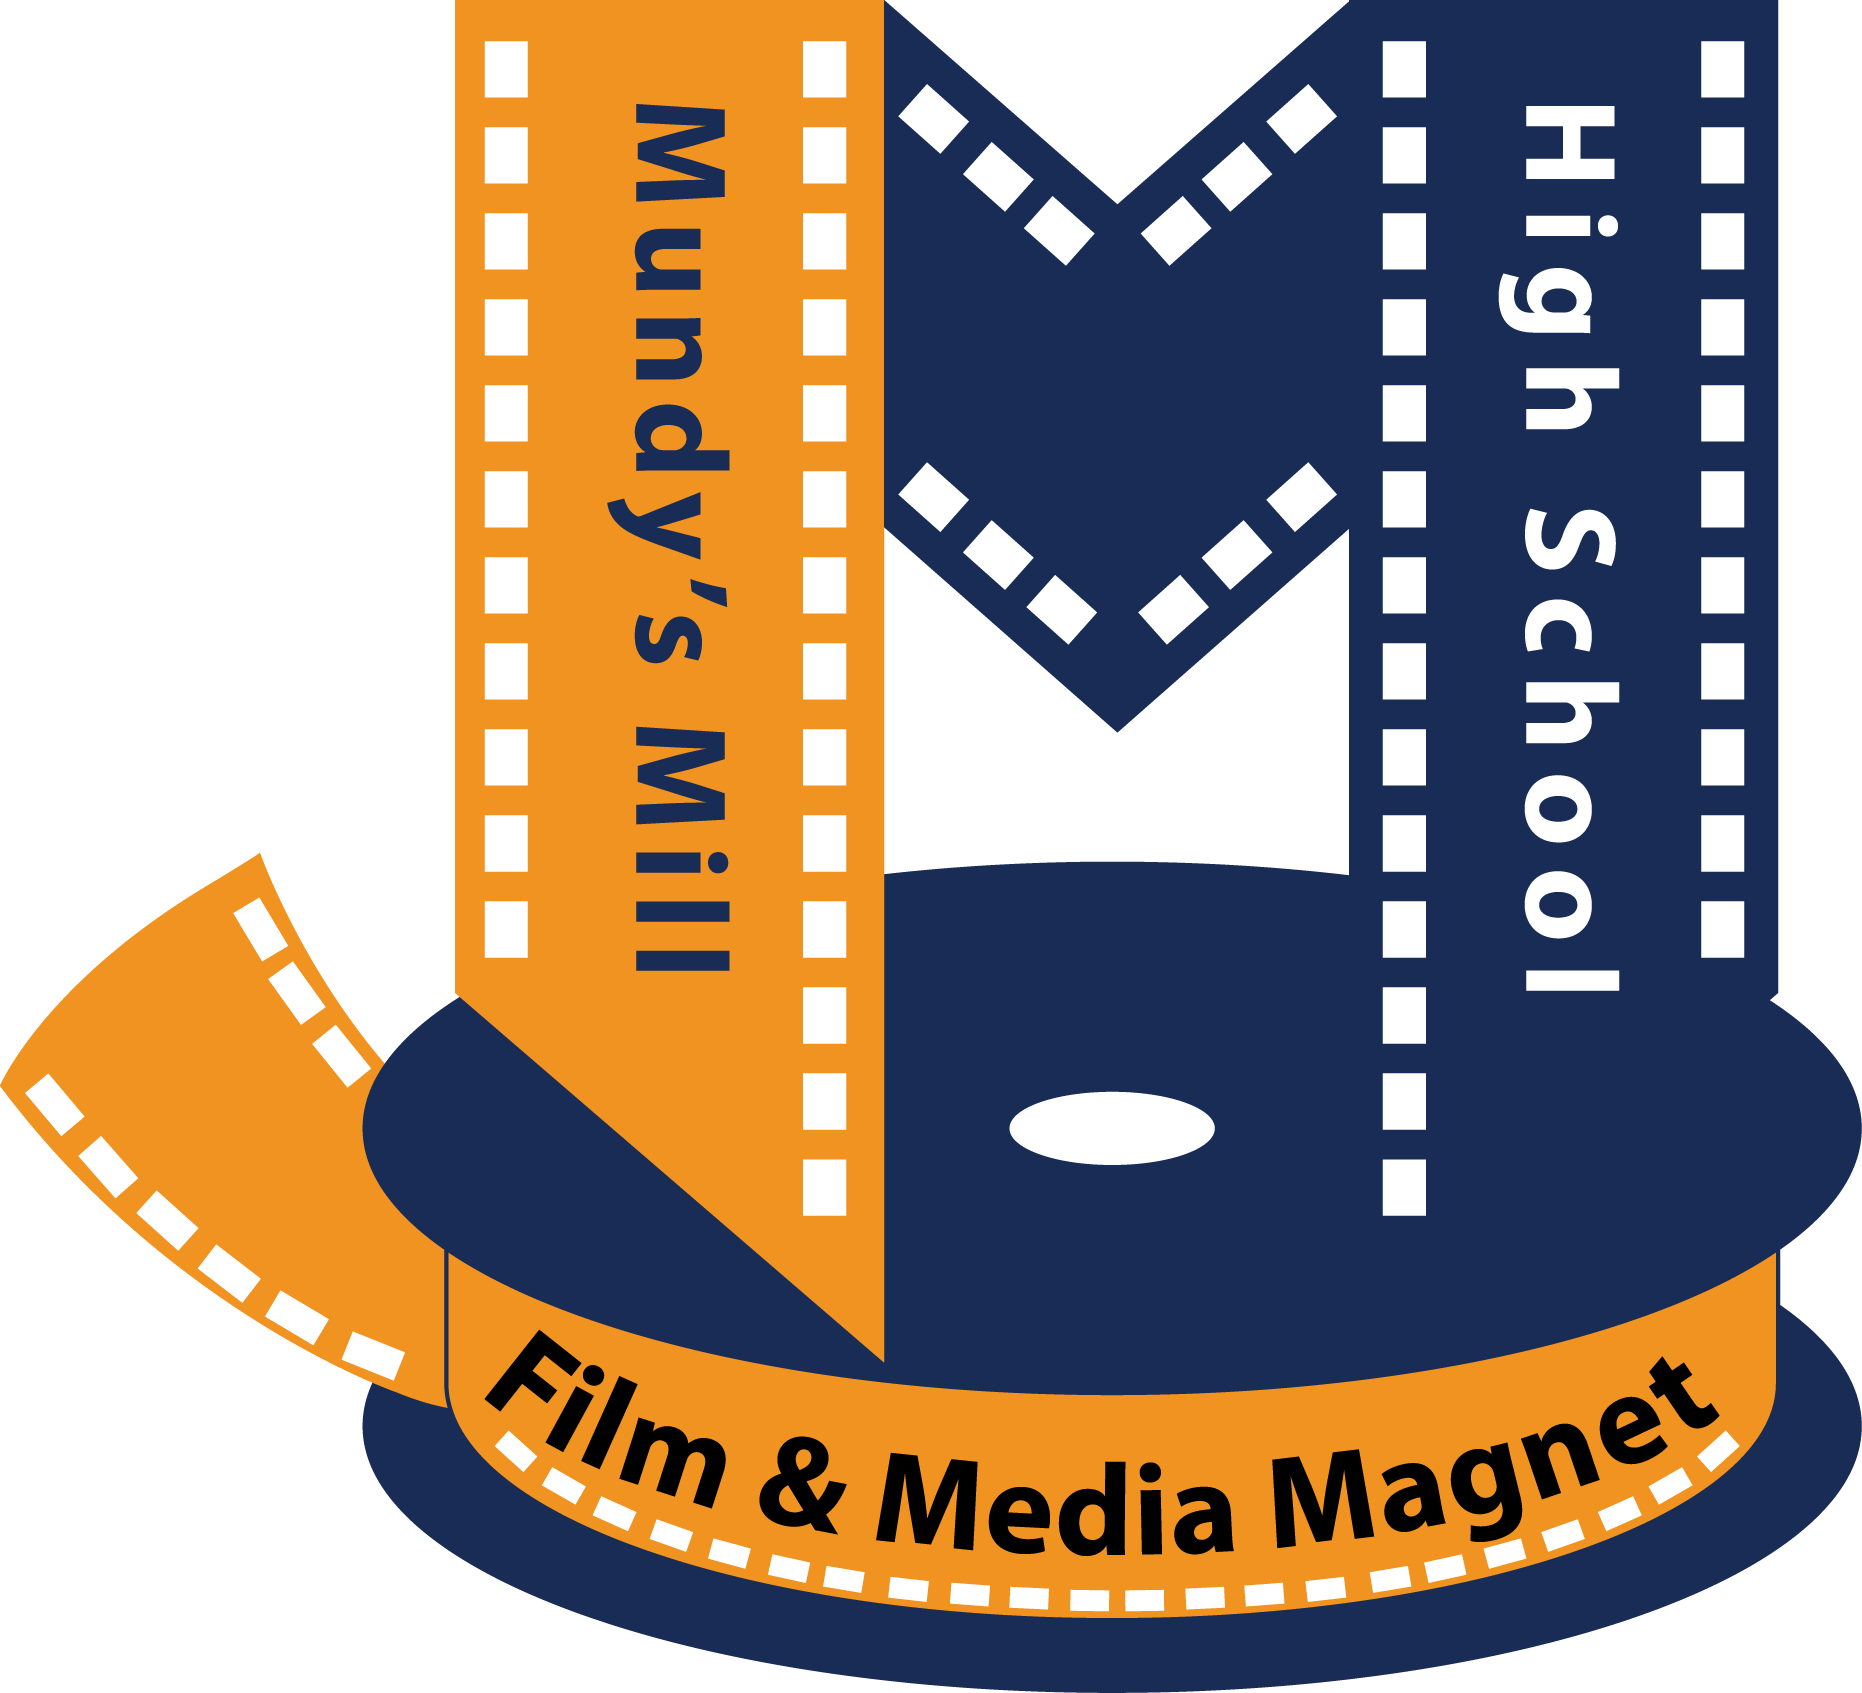 FILM AND MEDIA MAGNET APPLICATION IS NOW AVAILABLE